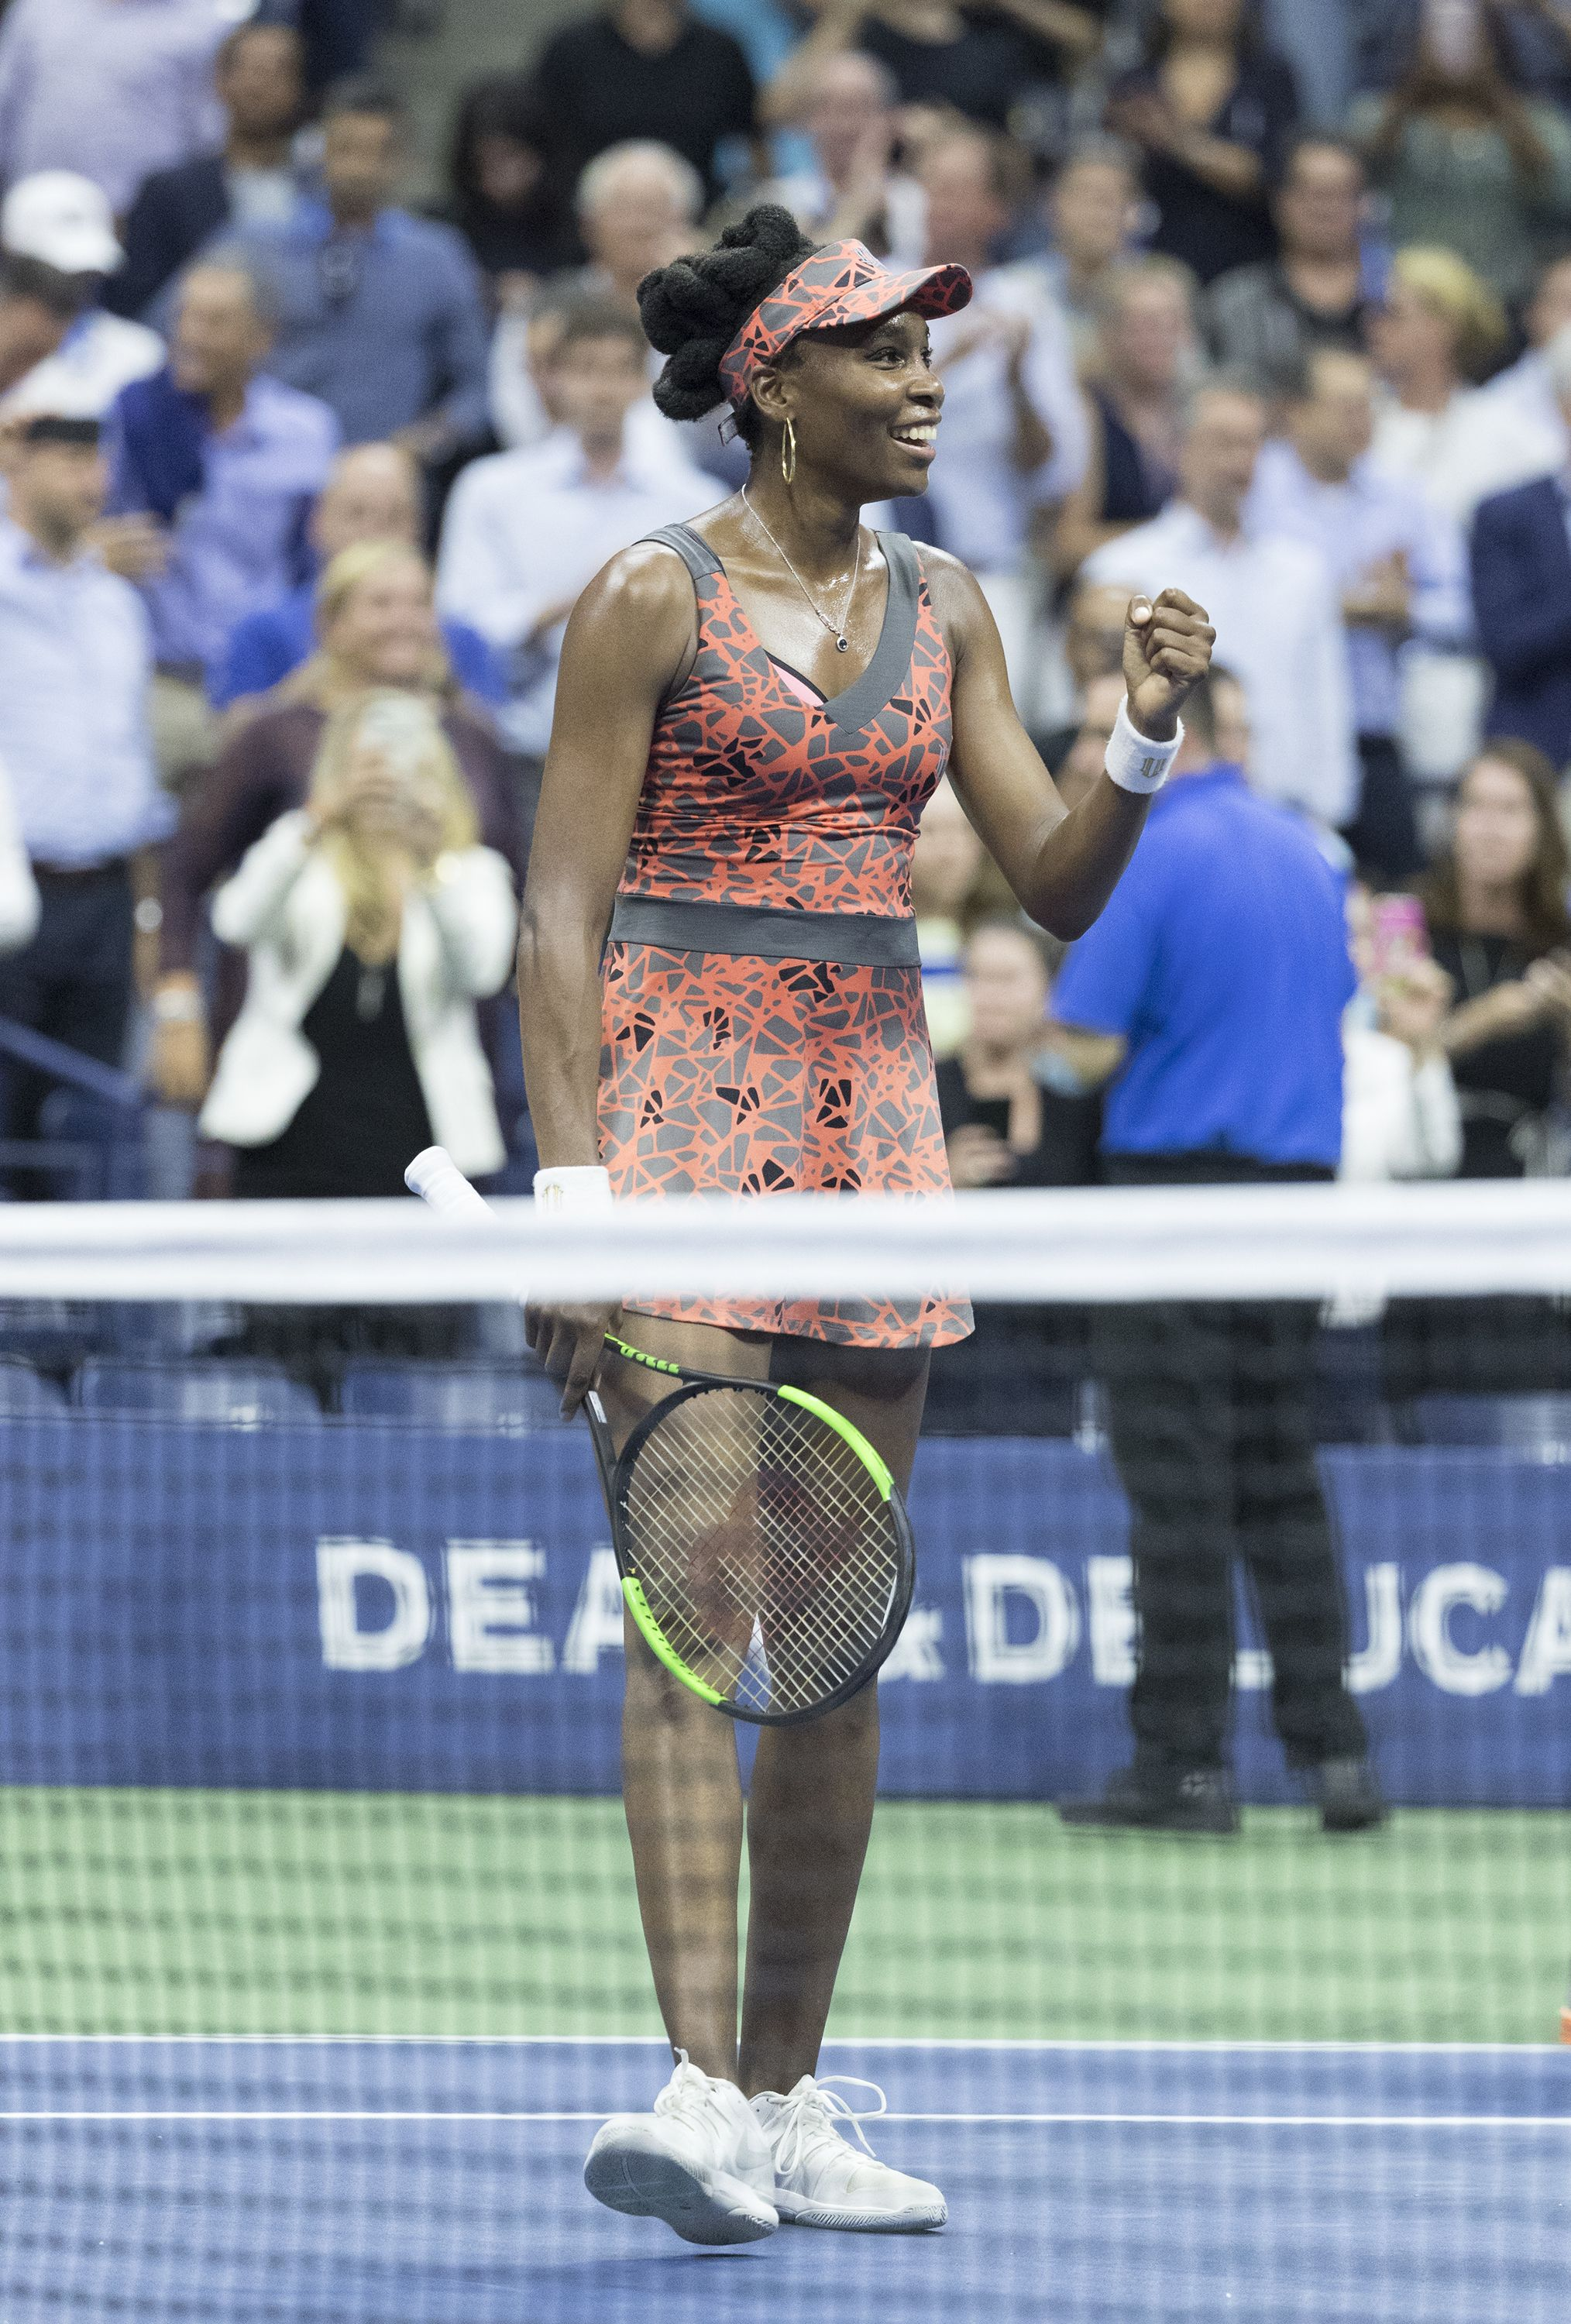 Venus Williams makes it to the Semi-finals at the US Open. (Photo: Lev Radin)